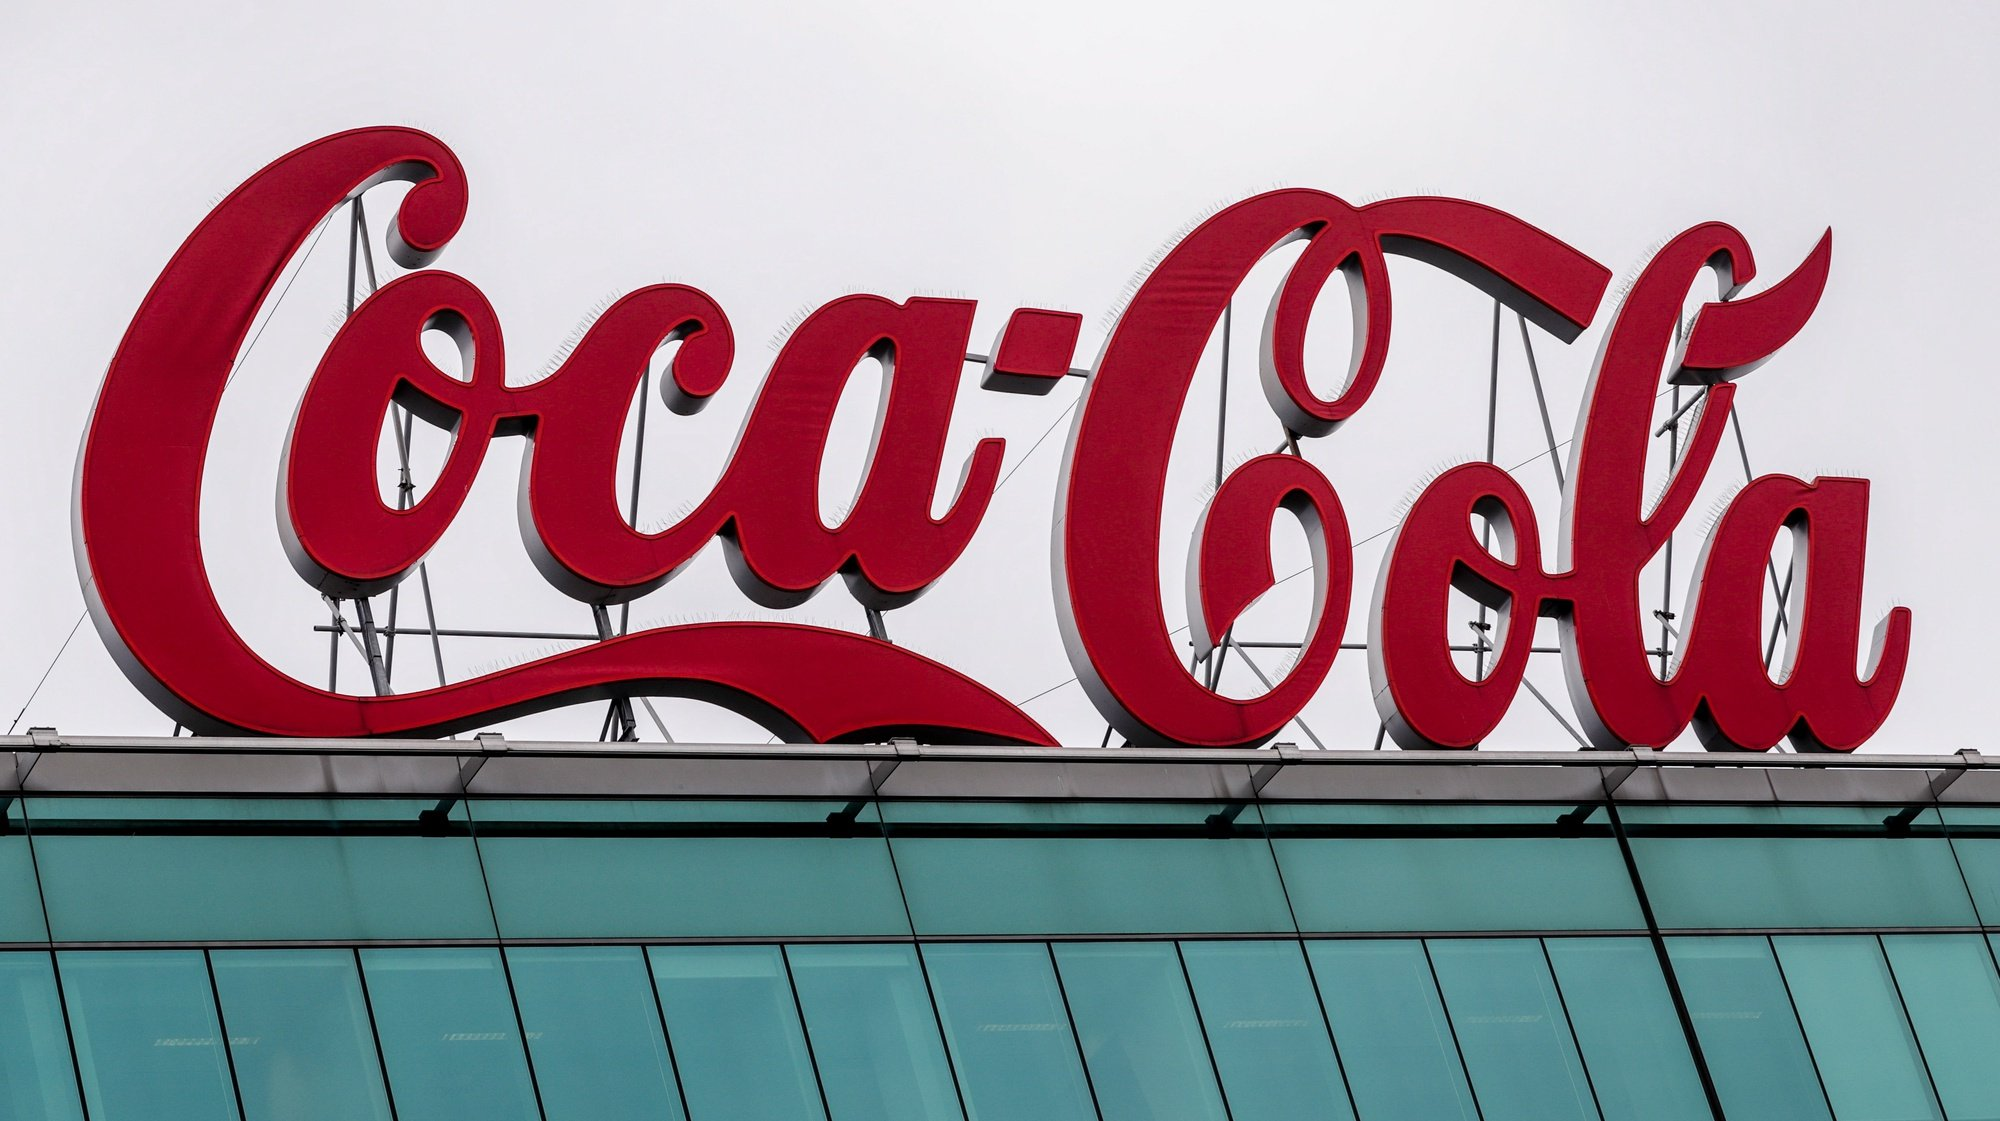 epa08764076 (FILE) - A view of a Coca-Cola logo at the headquarter of Coca-Cola Belgium in Brussels, Belgium, 08 September 2020 (reissued 22 October 2020). Coca Cola is to release their 3rd quarter results on 22 October 2020.  EPA/STEPHANIE LECOCQ *** Local Caption *** 56327286